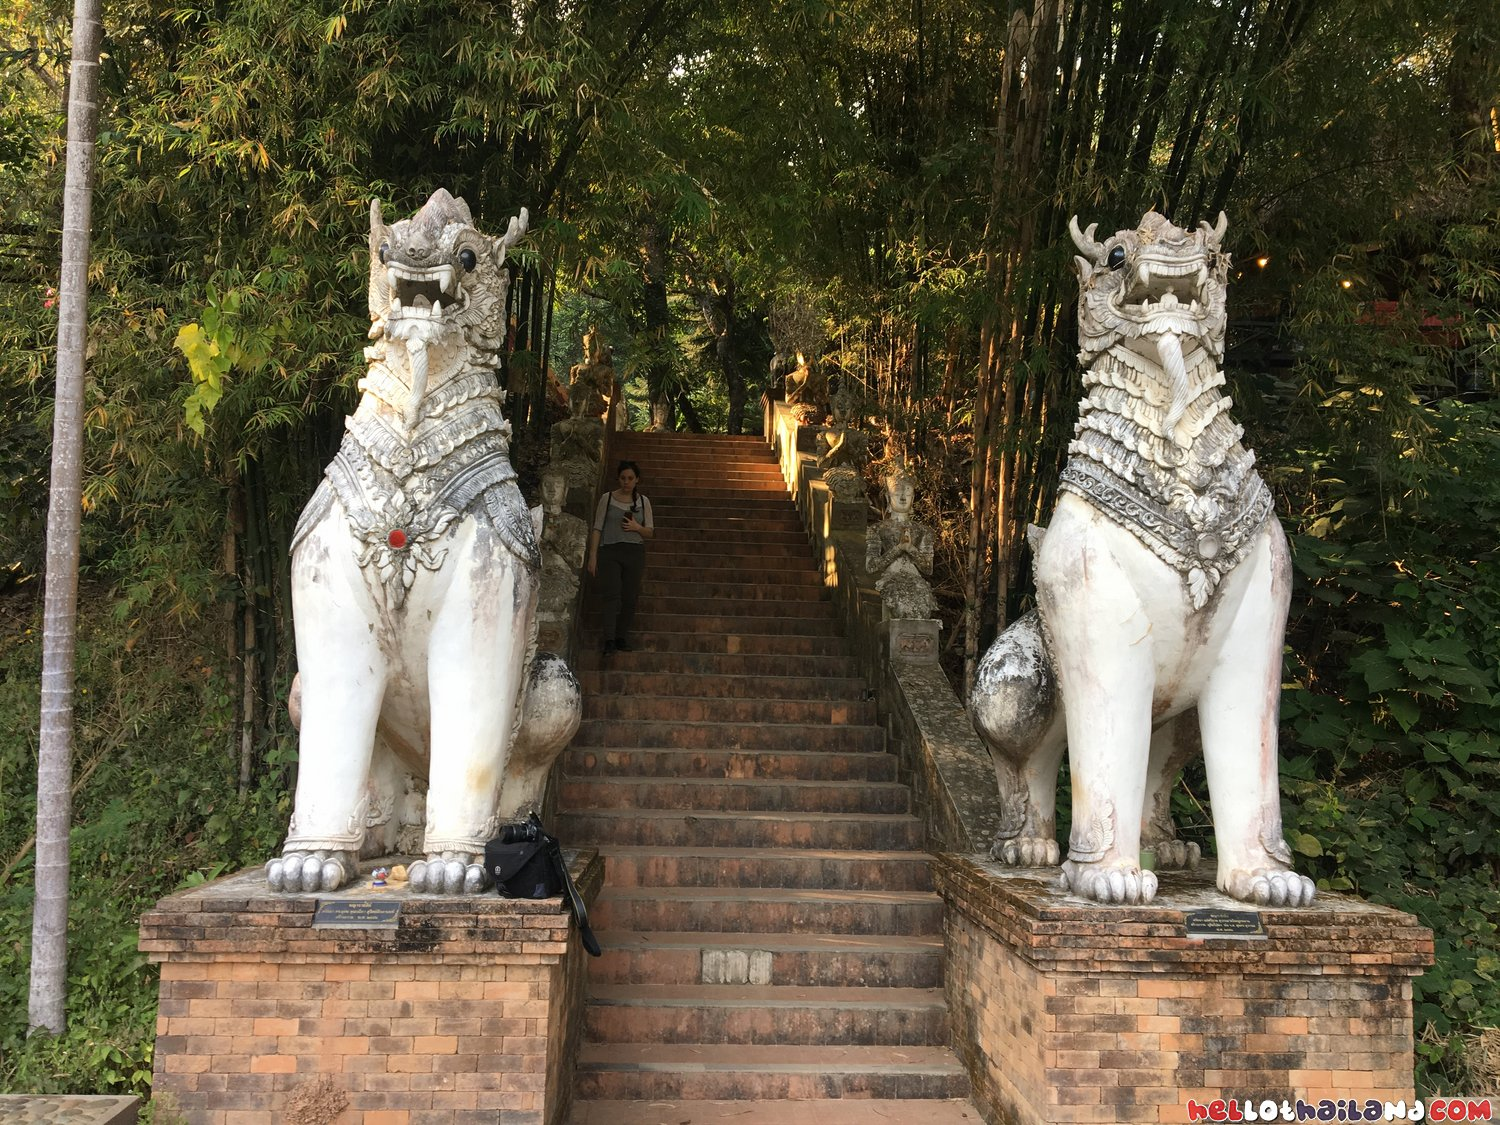 Amazing Statues at Wat Palad Chiang MAi Doi Suthep